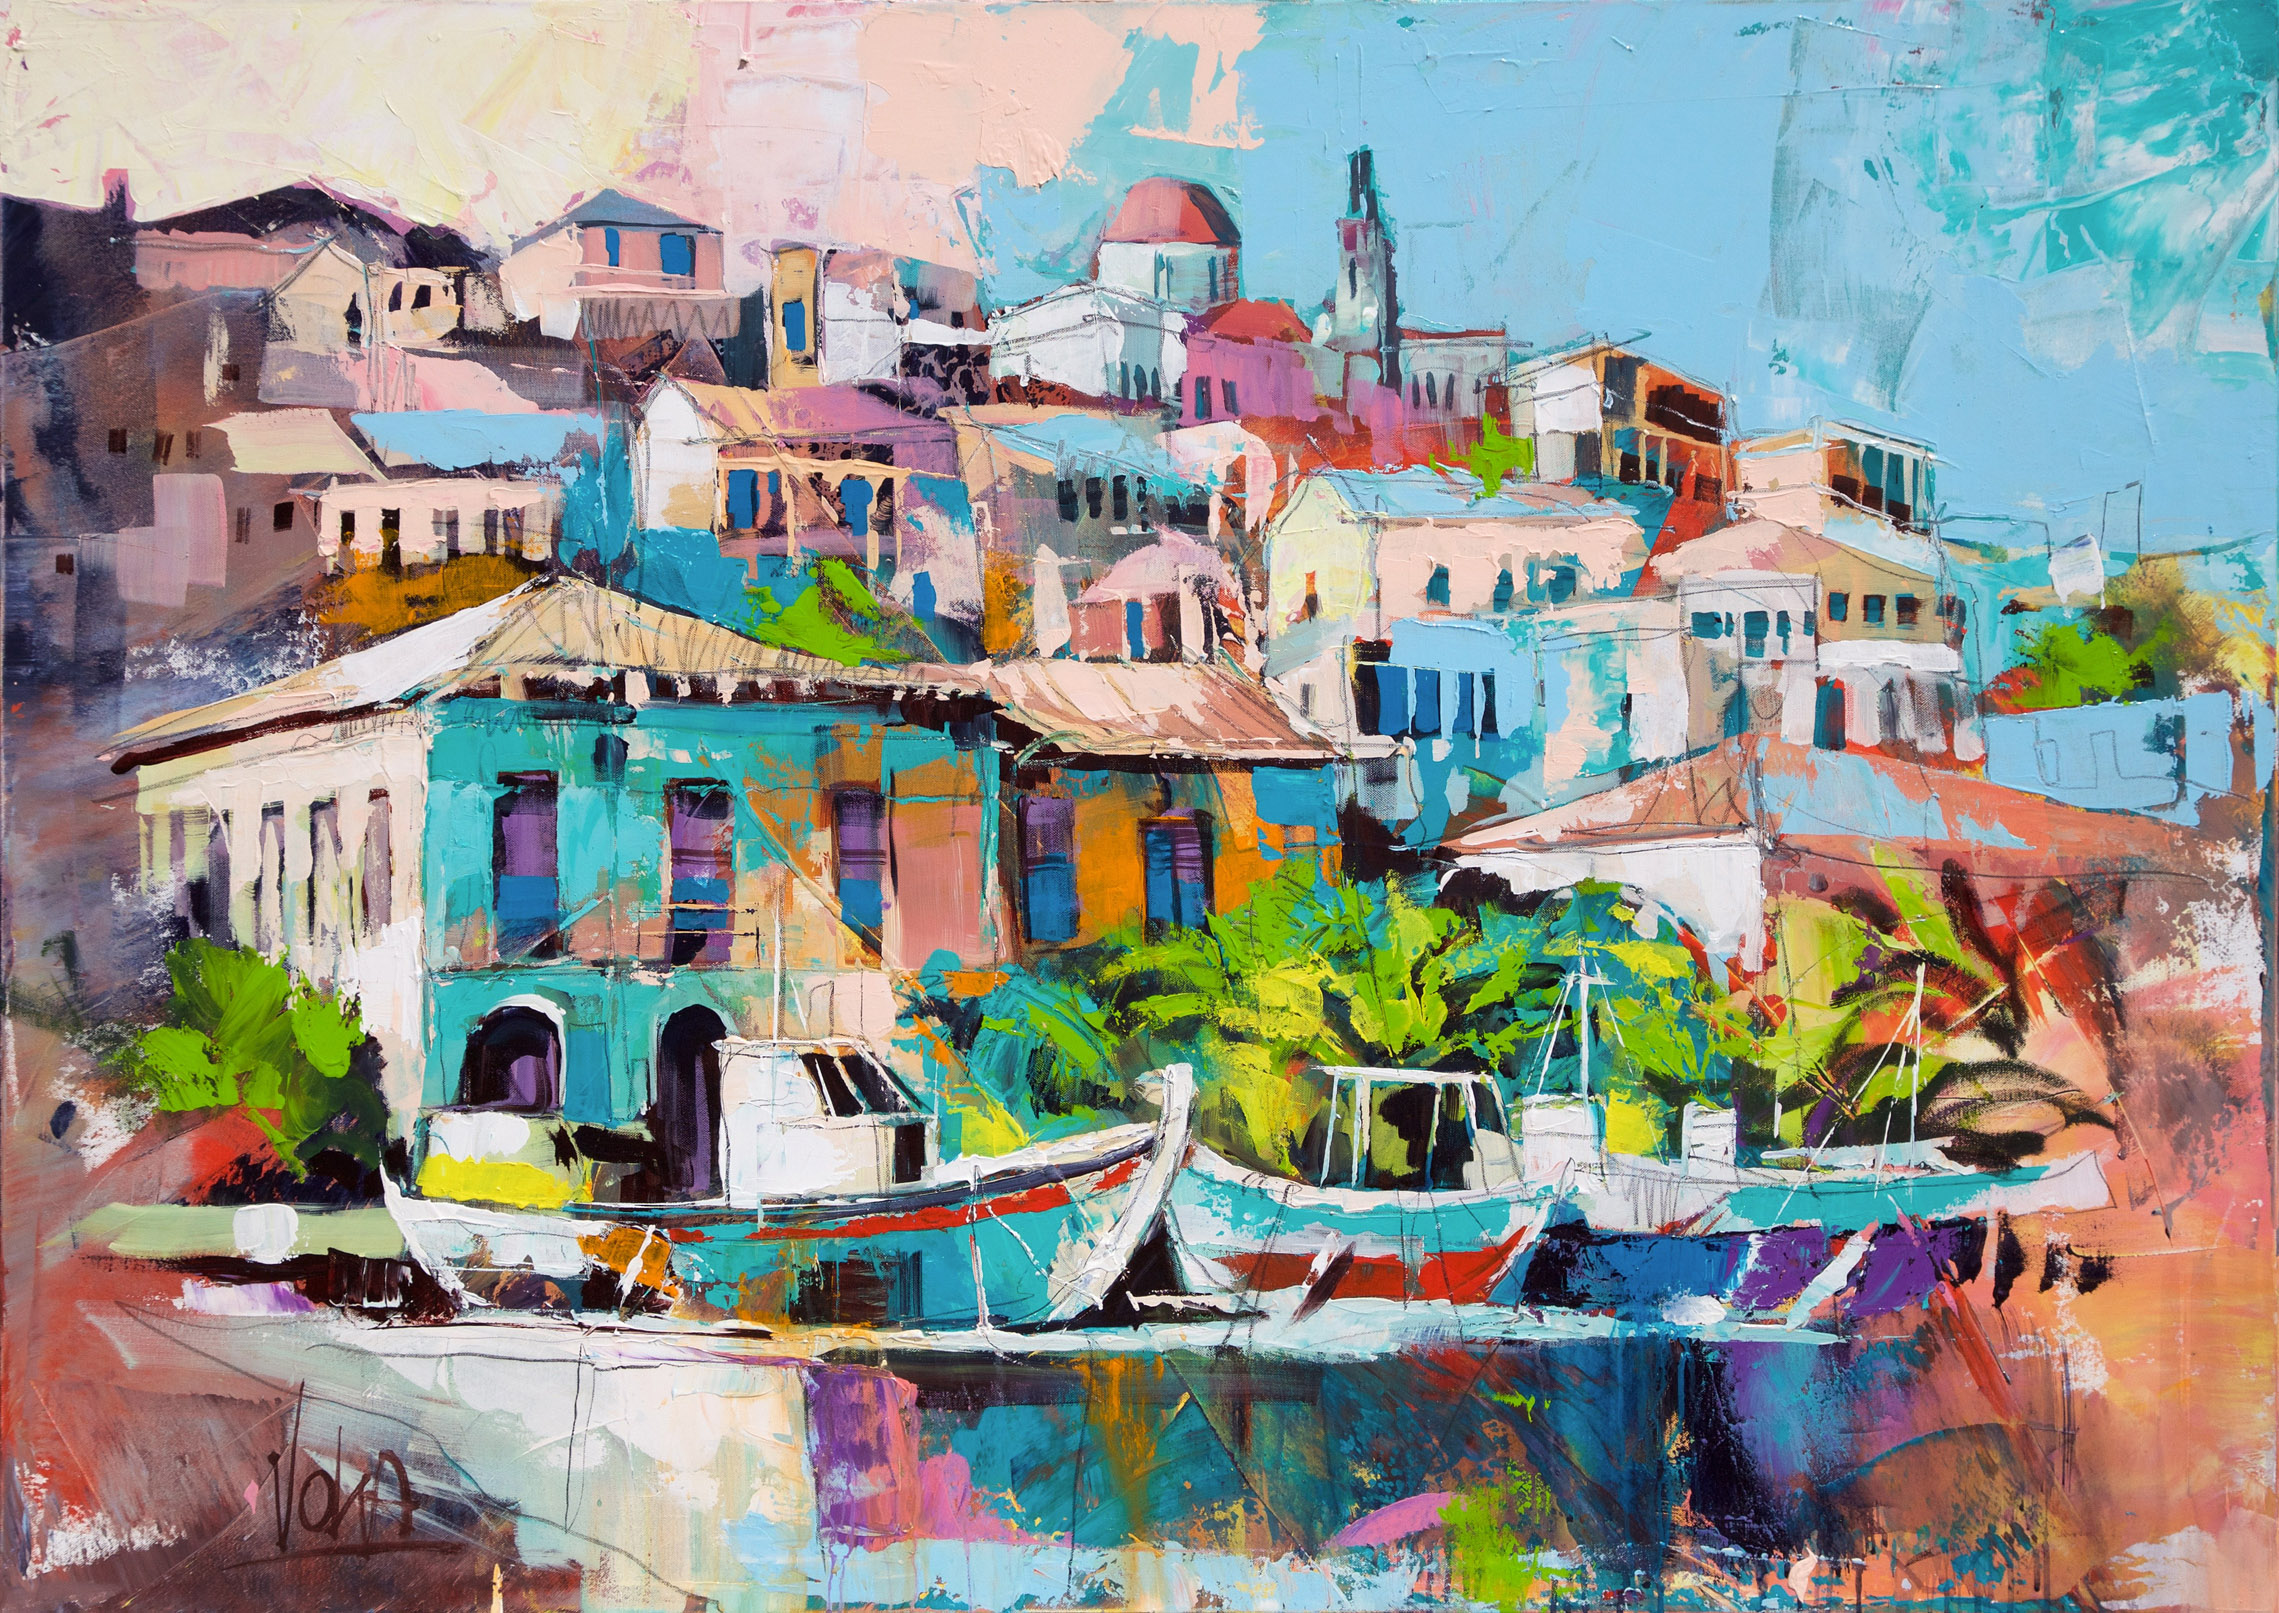 Koroni, 100x140 cm/39,4x55,1 inch, Acrylic on Canvas